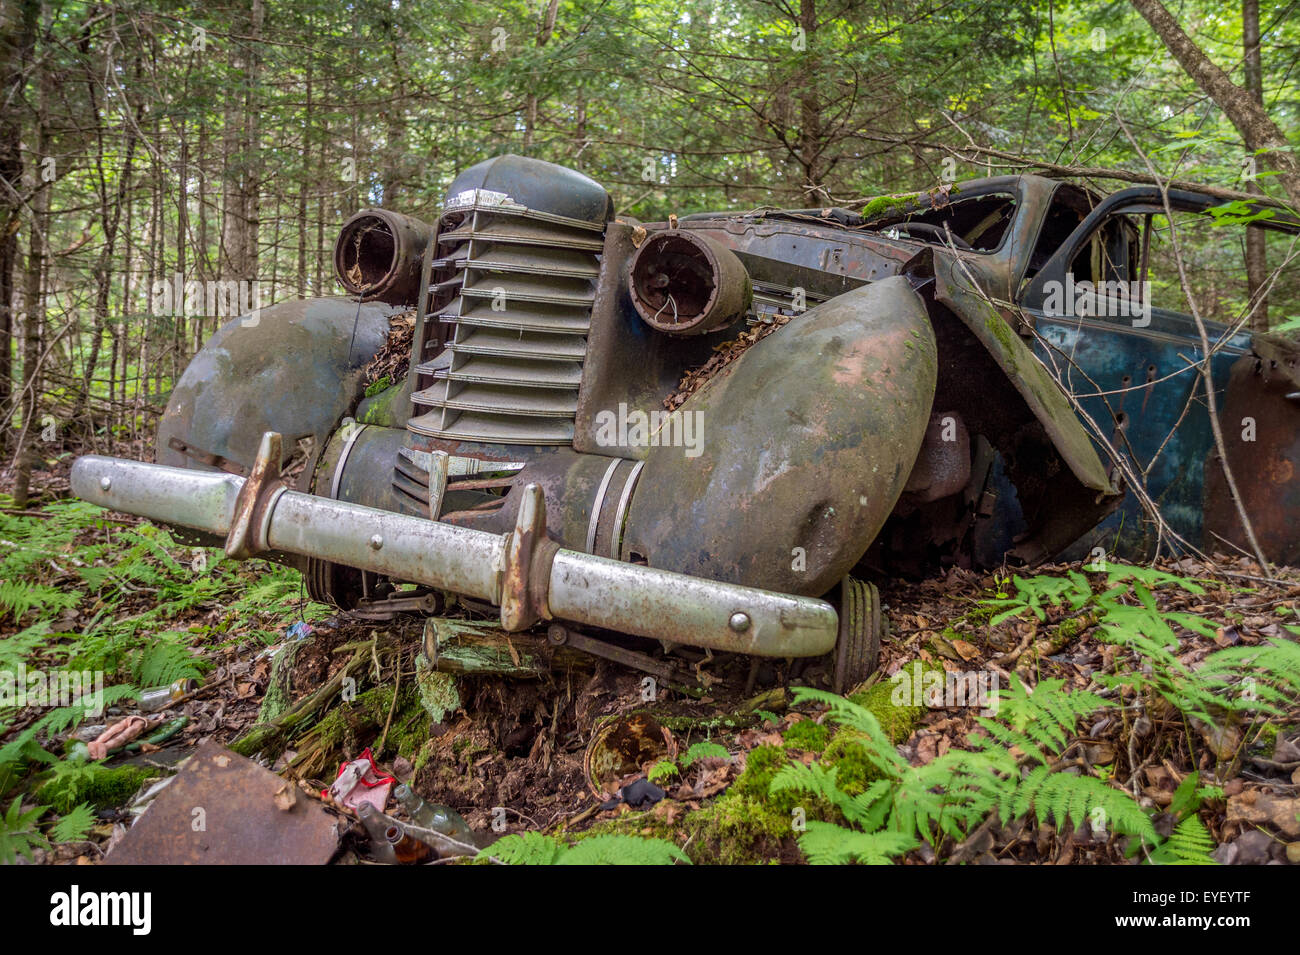 Old Car in the forest with trees, at the US-Canada border - Stock Image